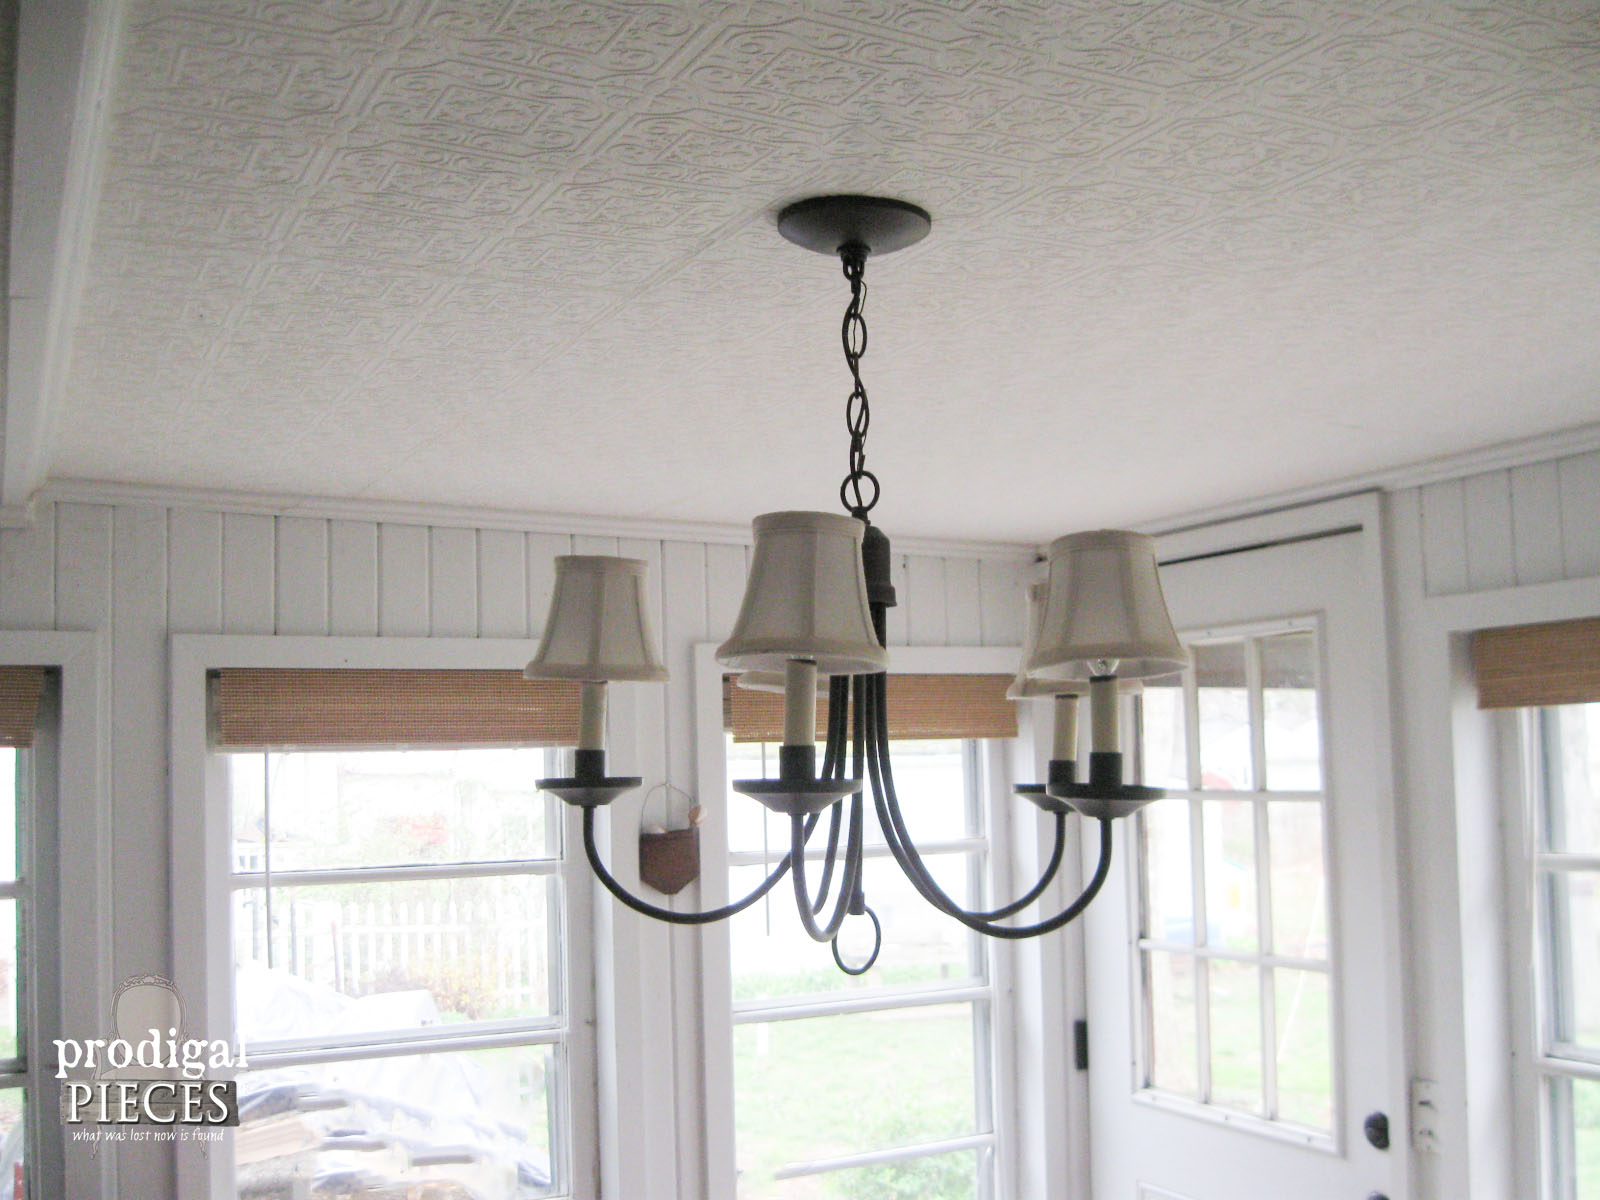 Farmhouse Chandelier at Home and Interior Design Ideas